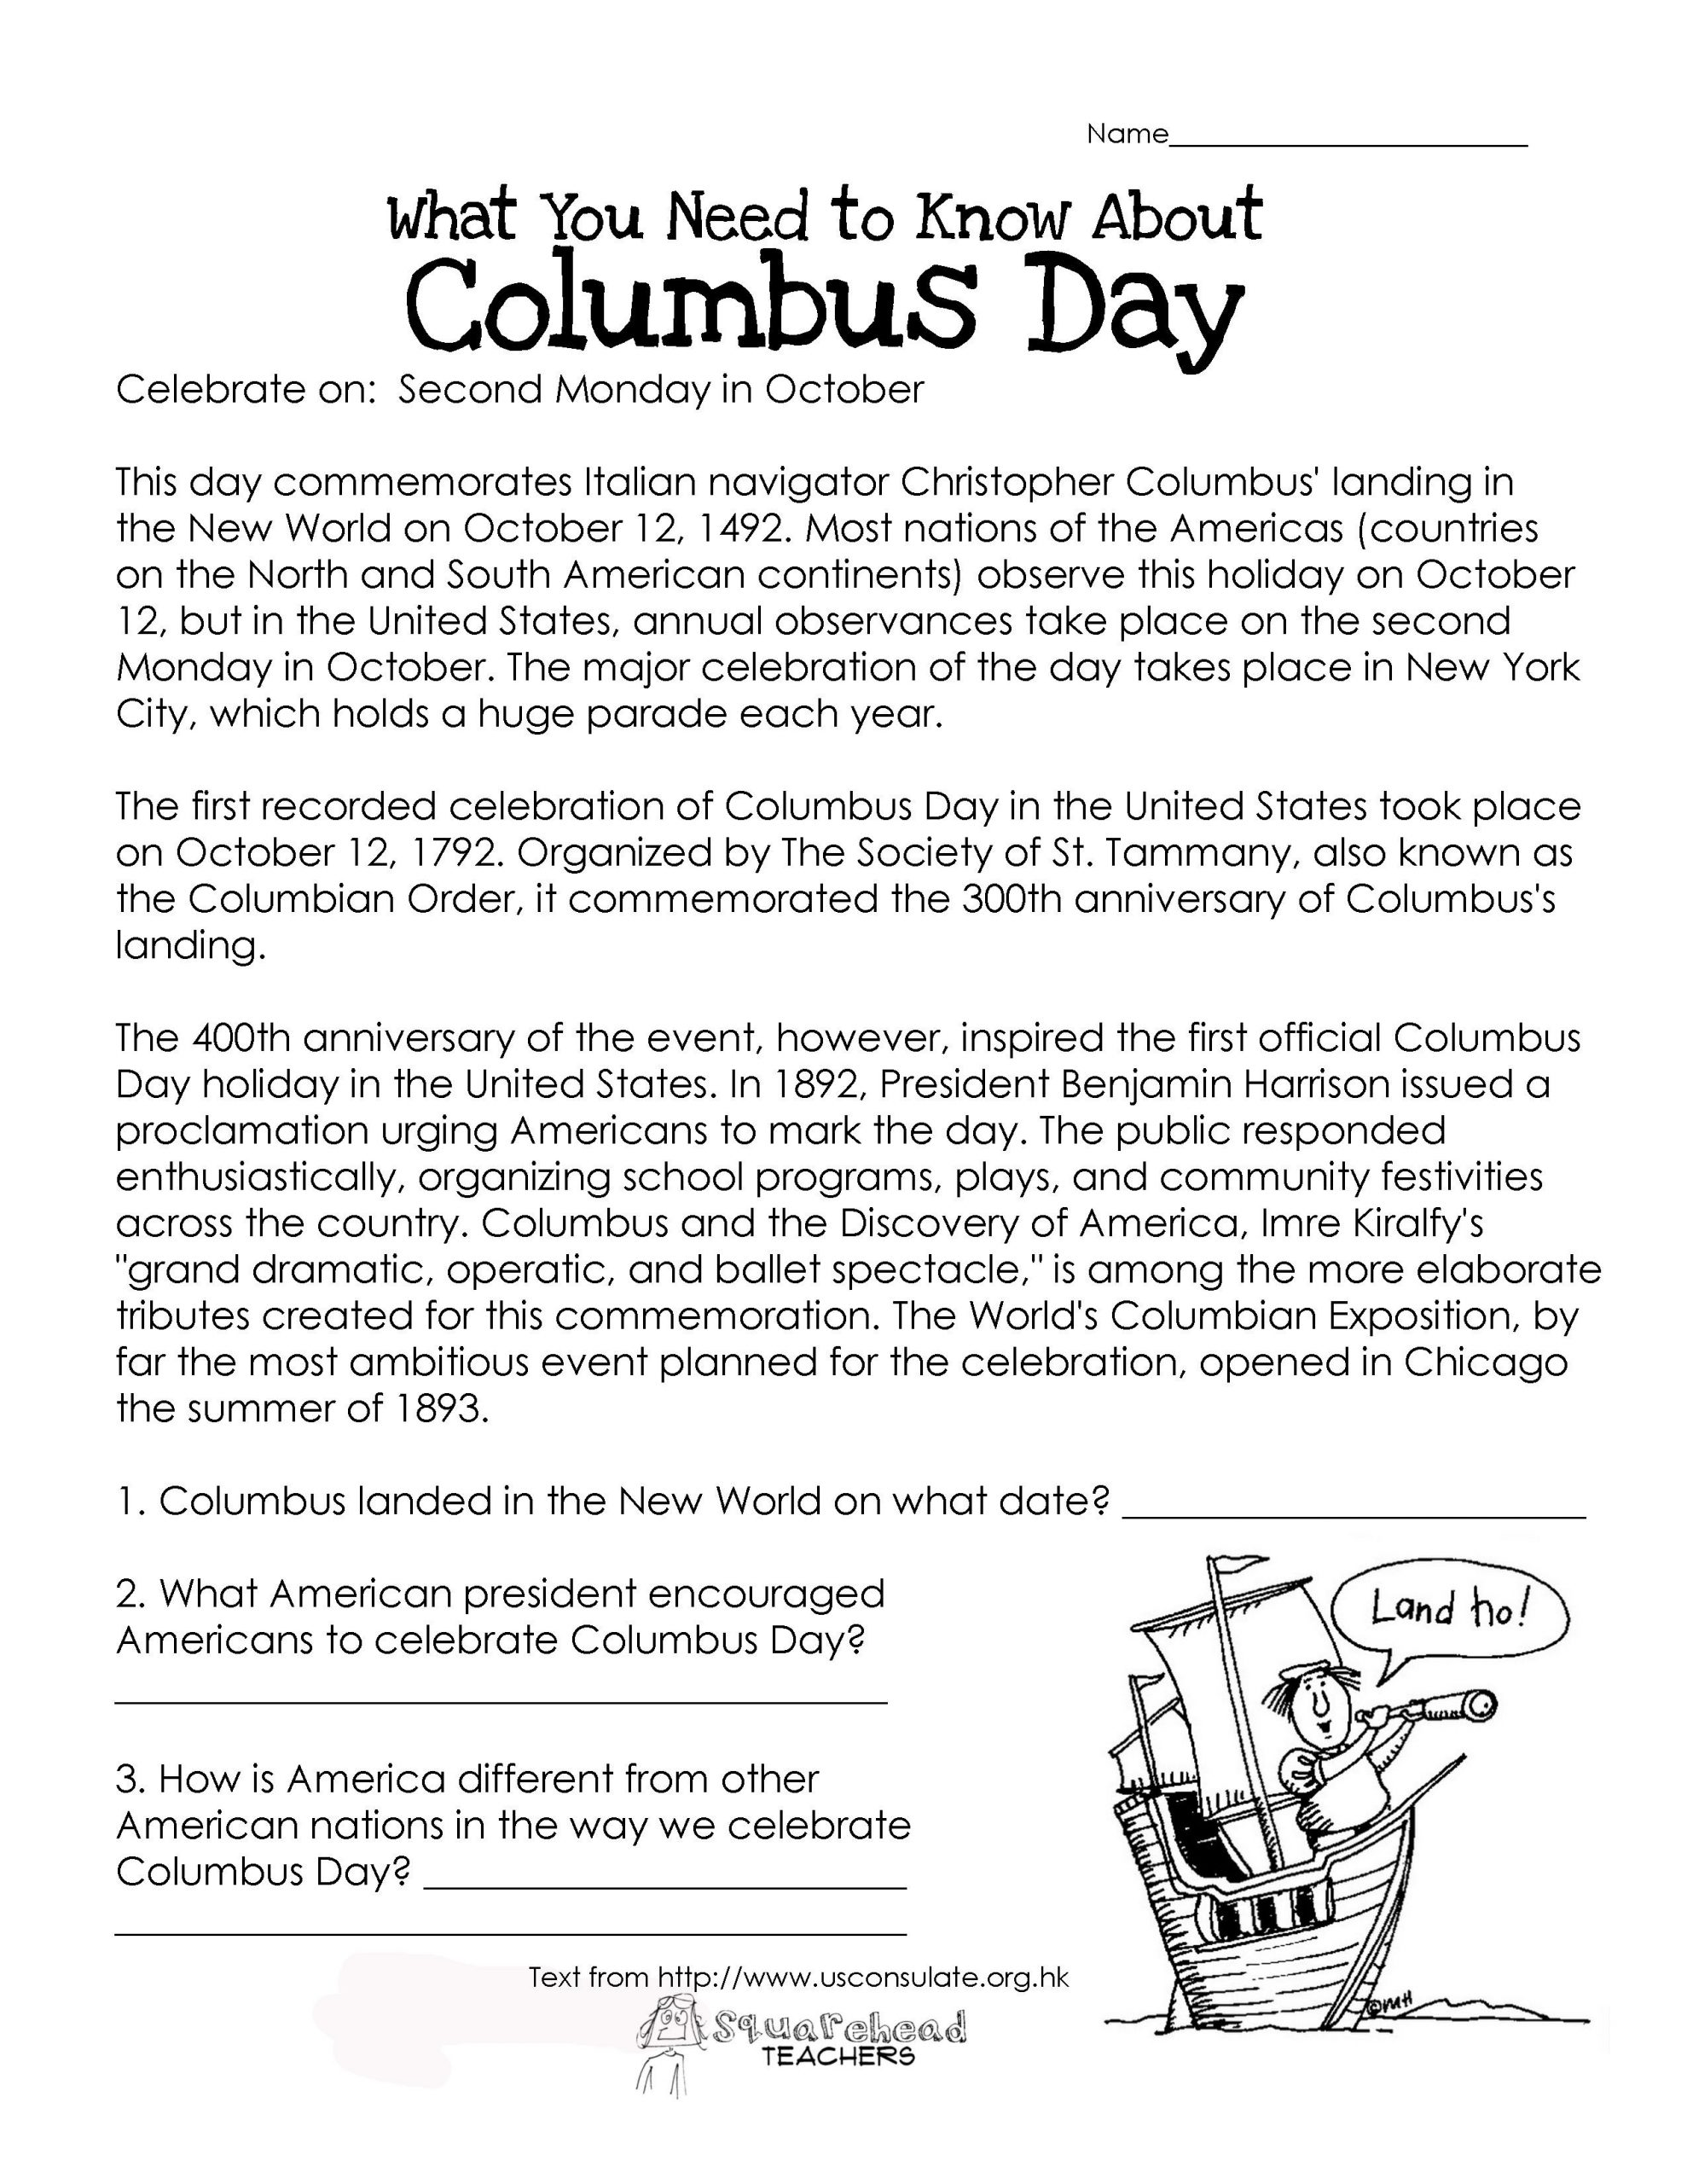 Columbus Day Reading Comprehension Worksheets Columbus Day Free Worksheet